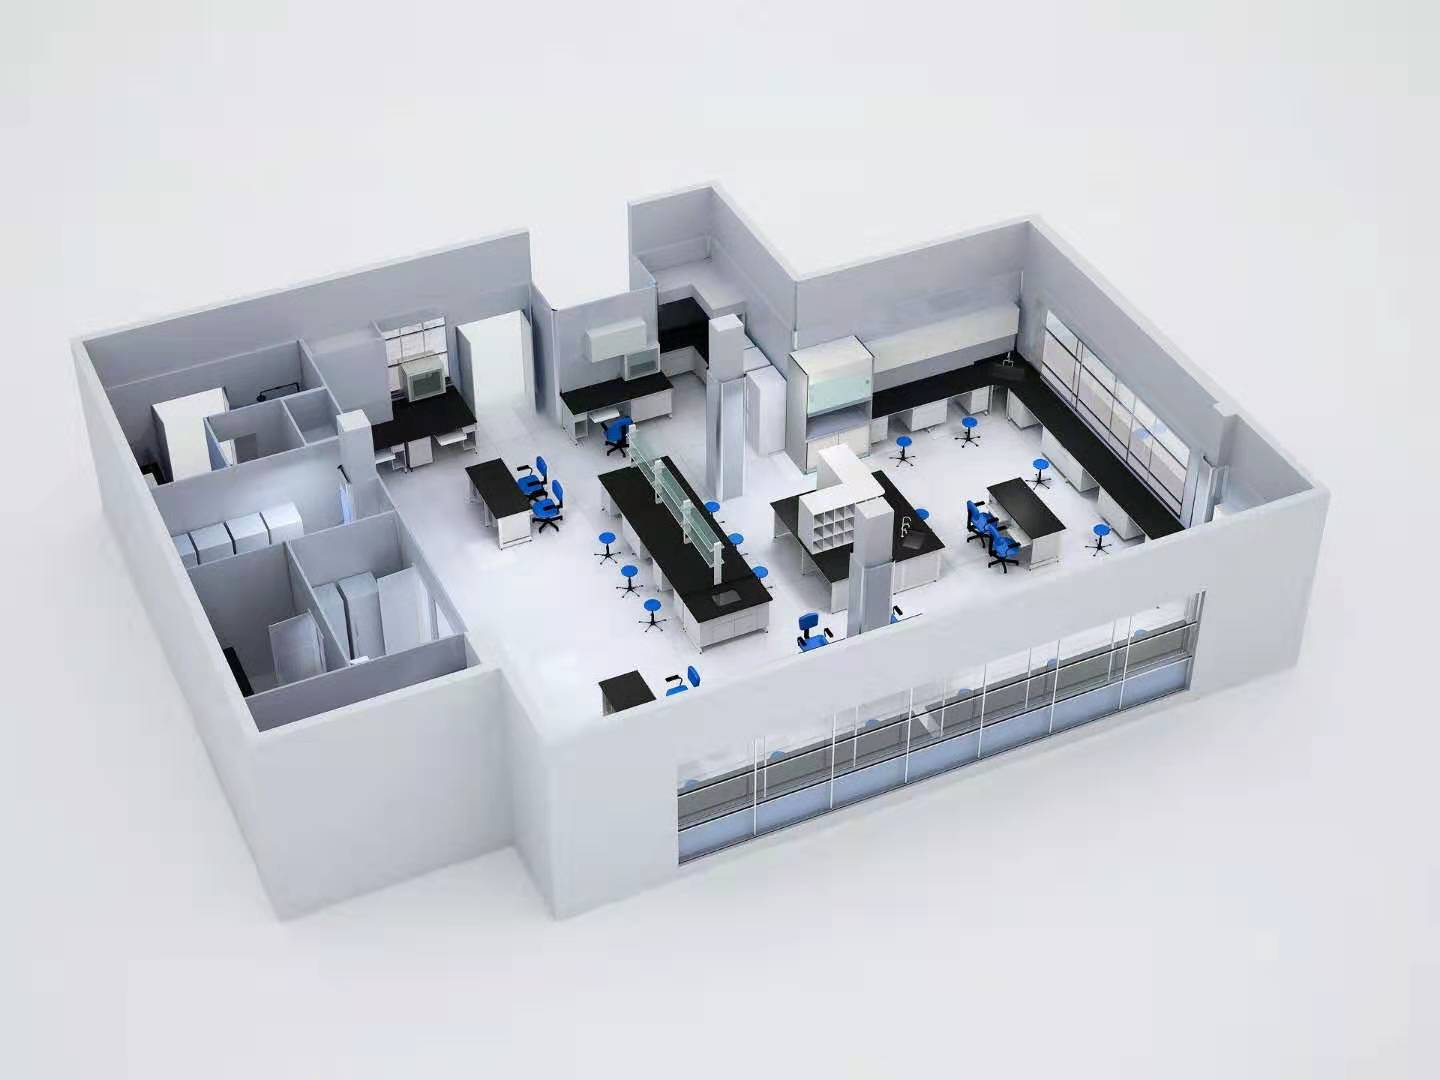 Design of Hospital Laboratory Department